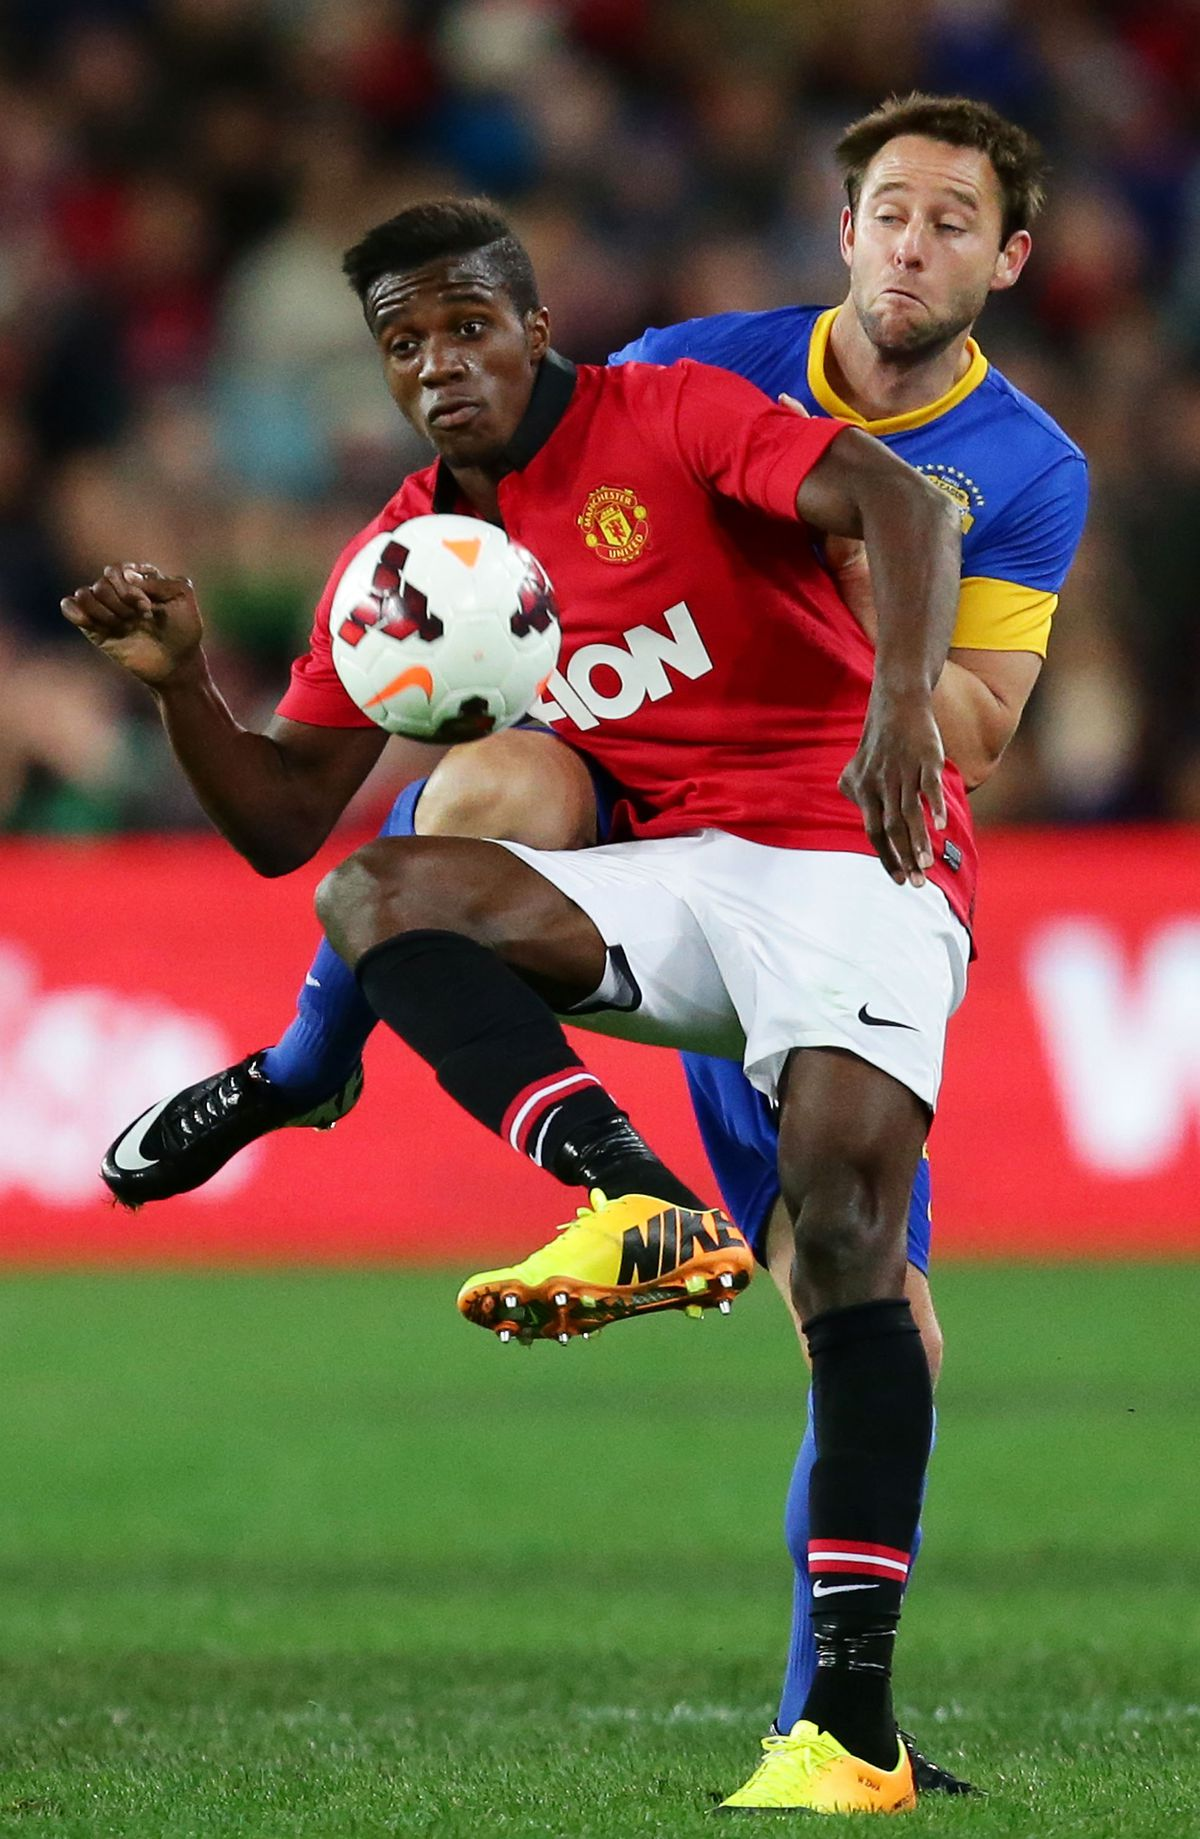 A-League All-Stars v Manchester United